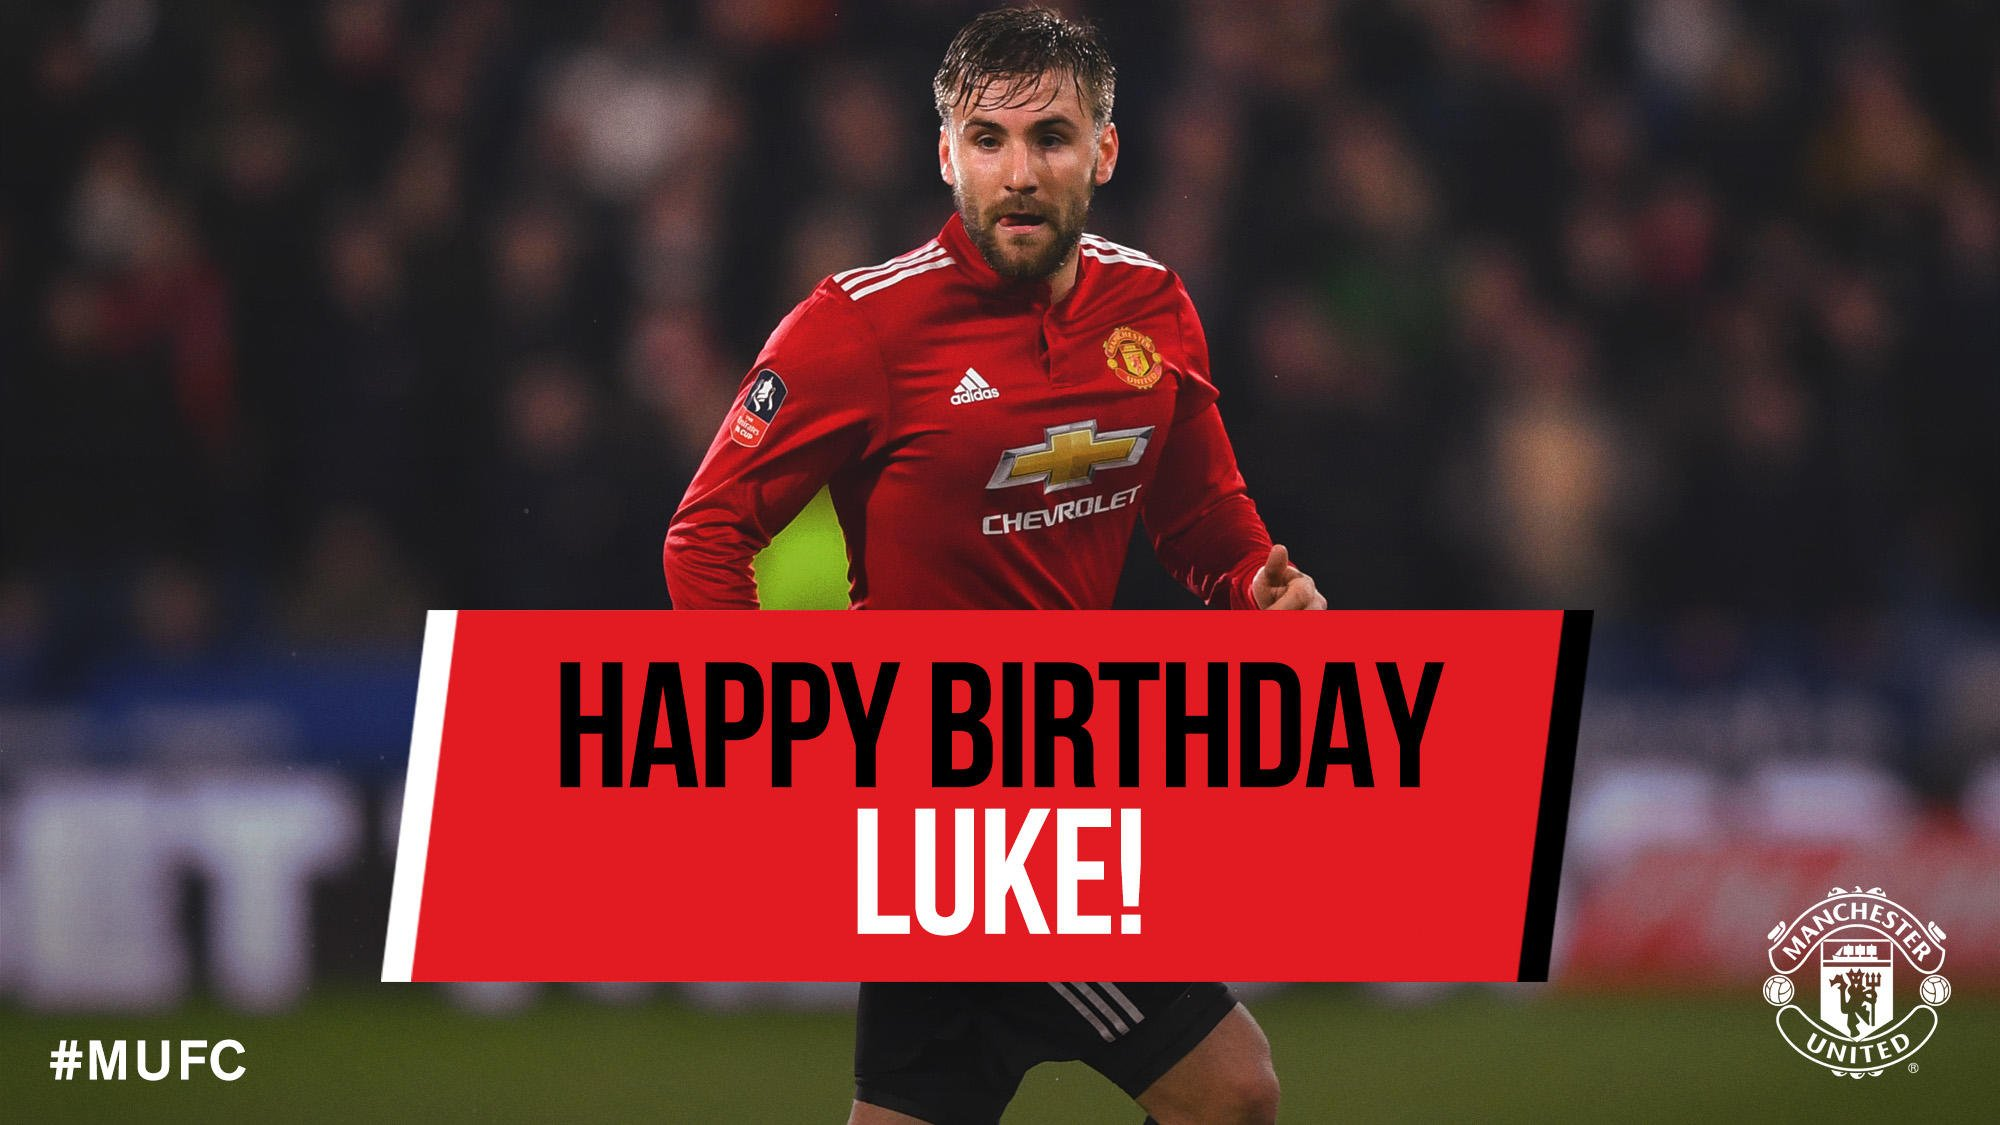 Happy birthday @LukeShaw23! Have a fantastic day! ���� https://t.co/pZ9X0fd2cY